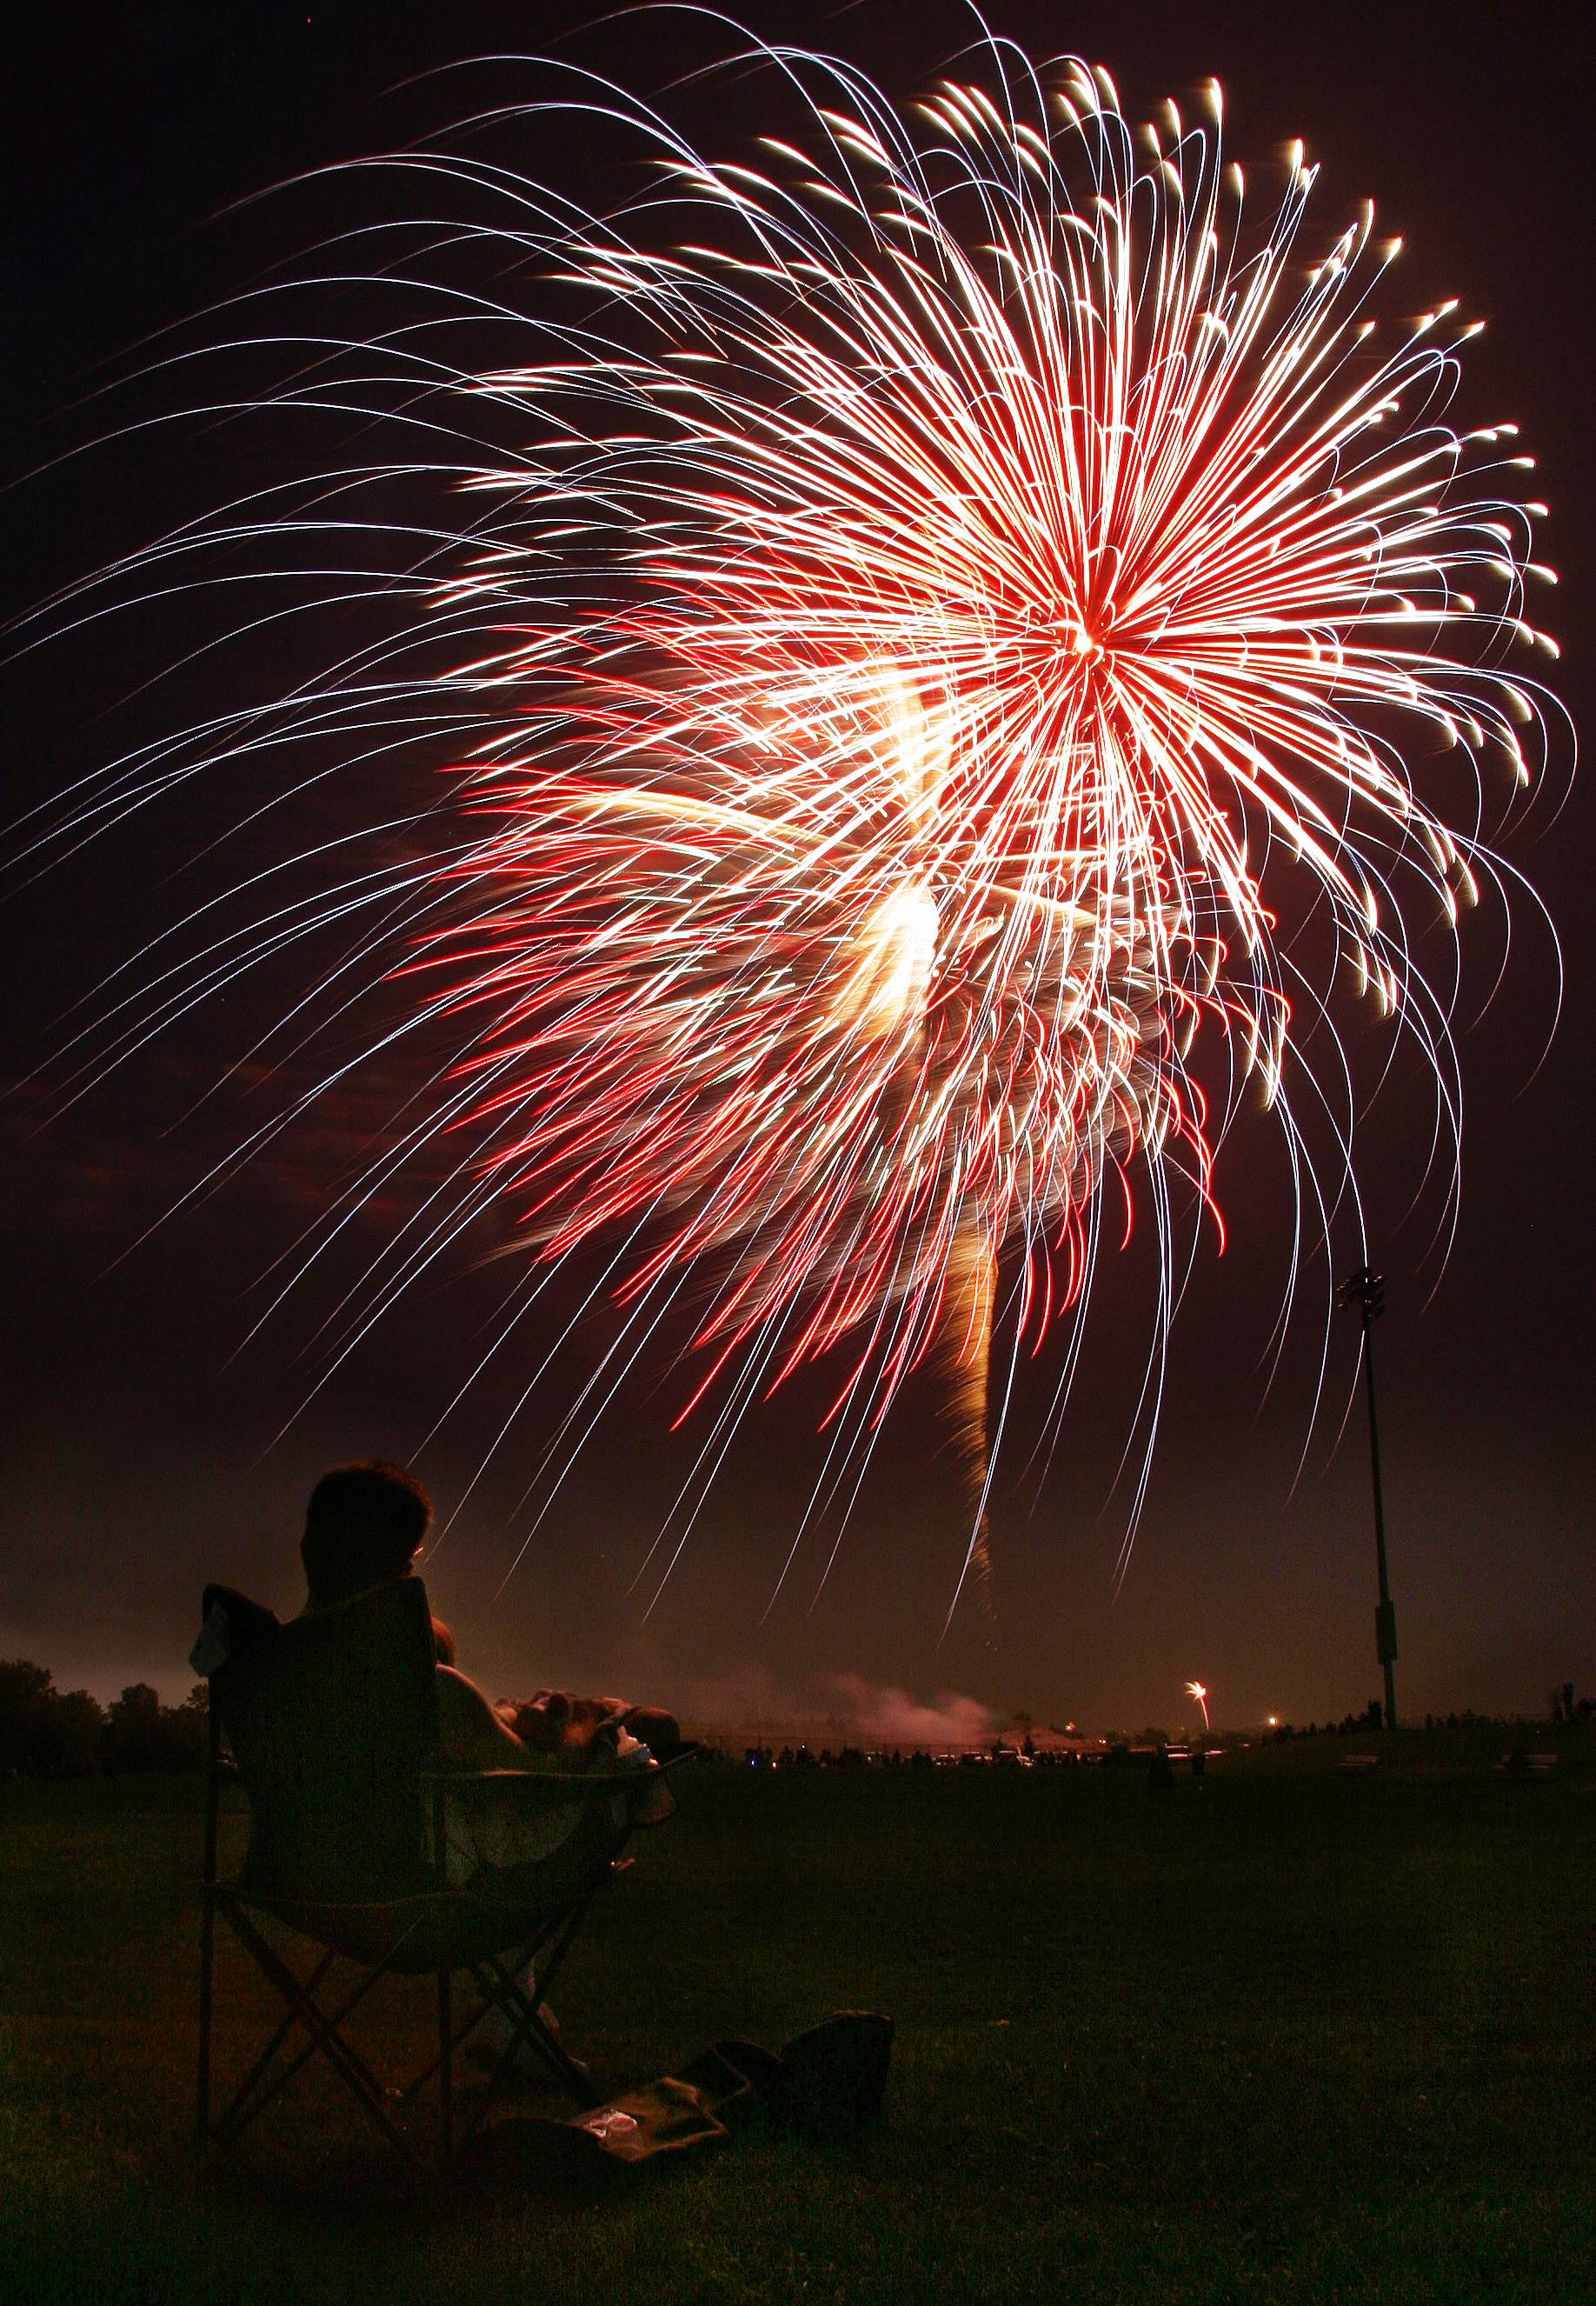 The last time the city of Elgin hosted a Fourth of July fireworks show, it was at the Elgin Sports Complex. This year, it will be at Festival Park.